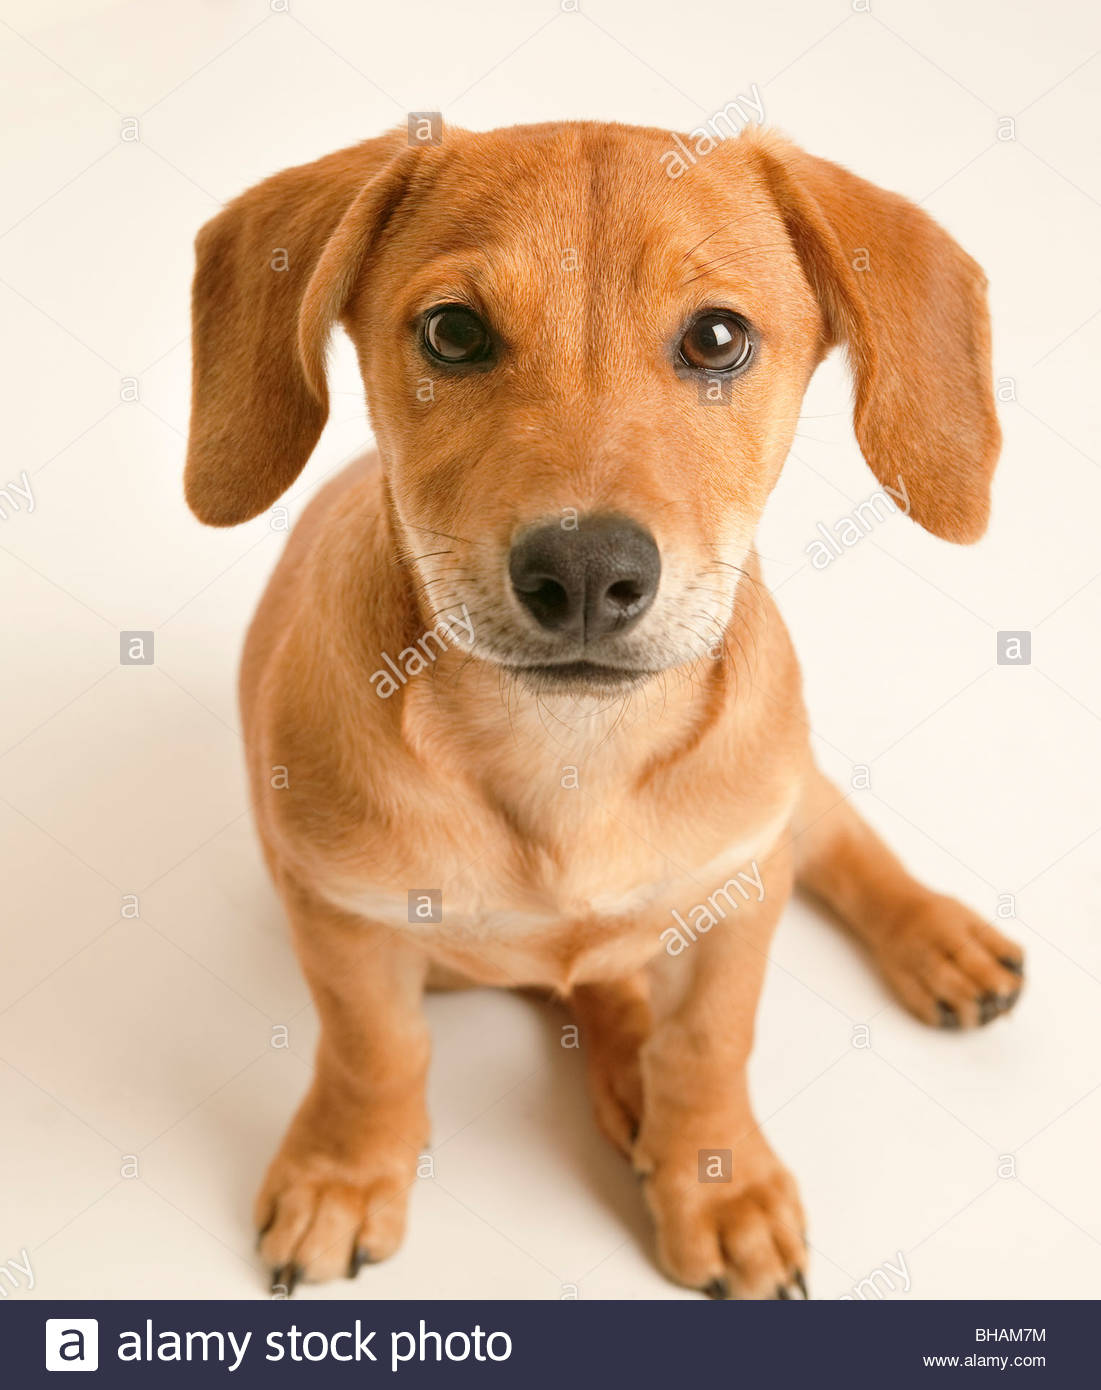 Adorable Puppy - Stock Image